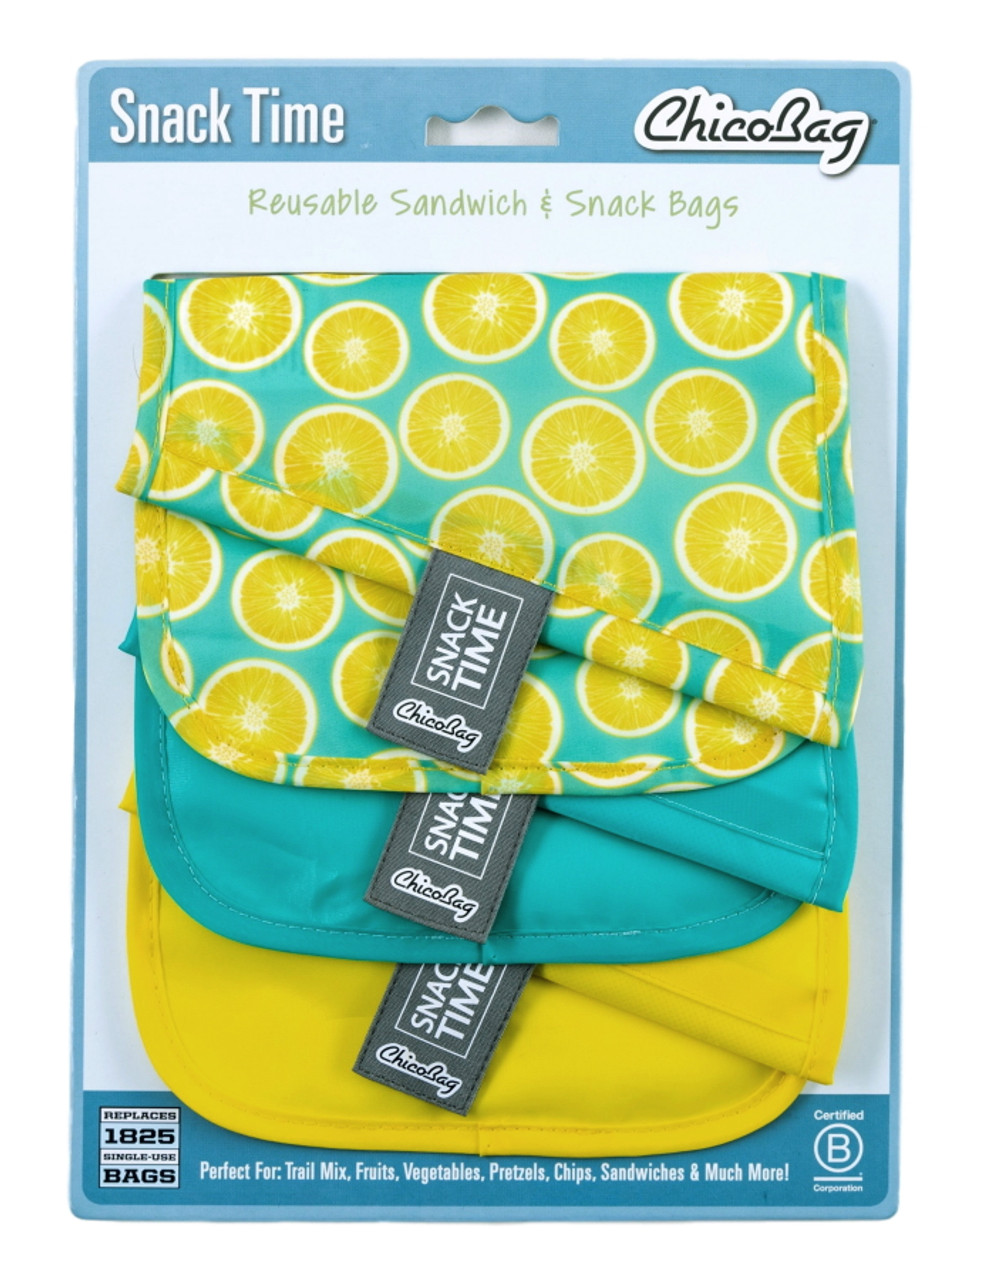 ChicoBag Snack Time Snack/Sandwich Bags (3-pack)